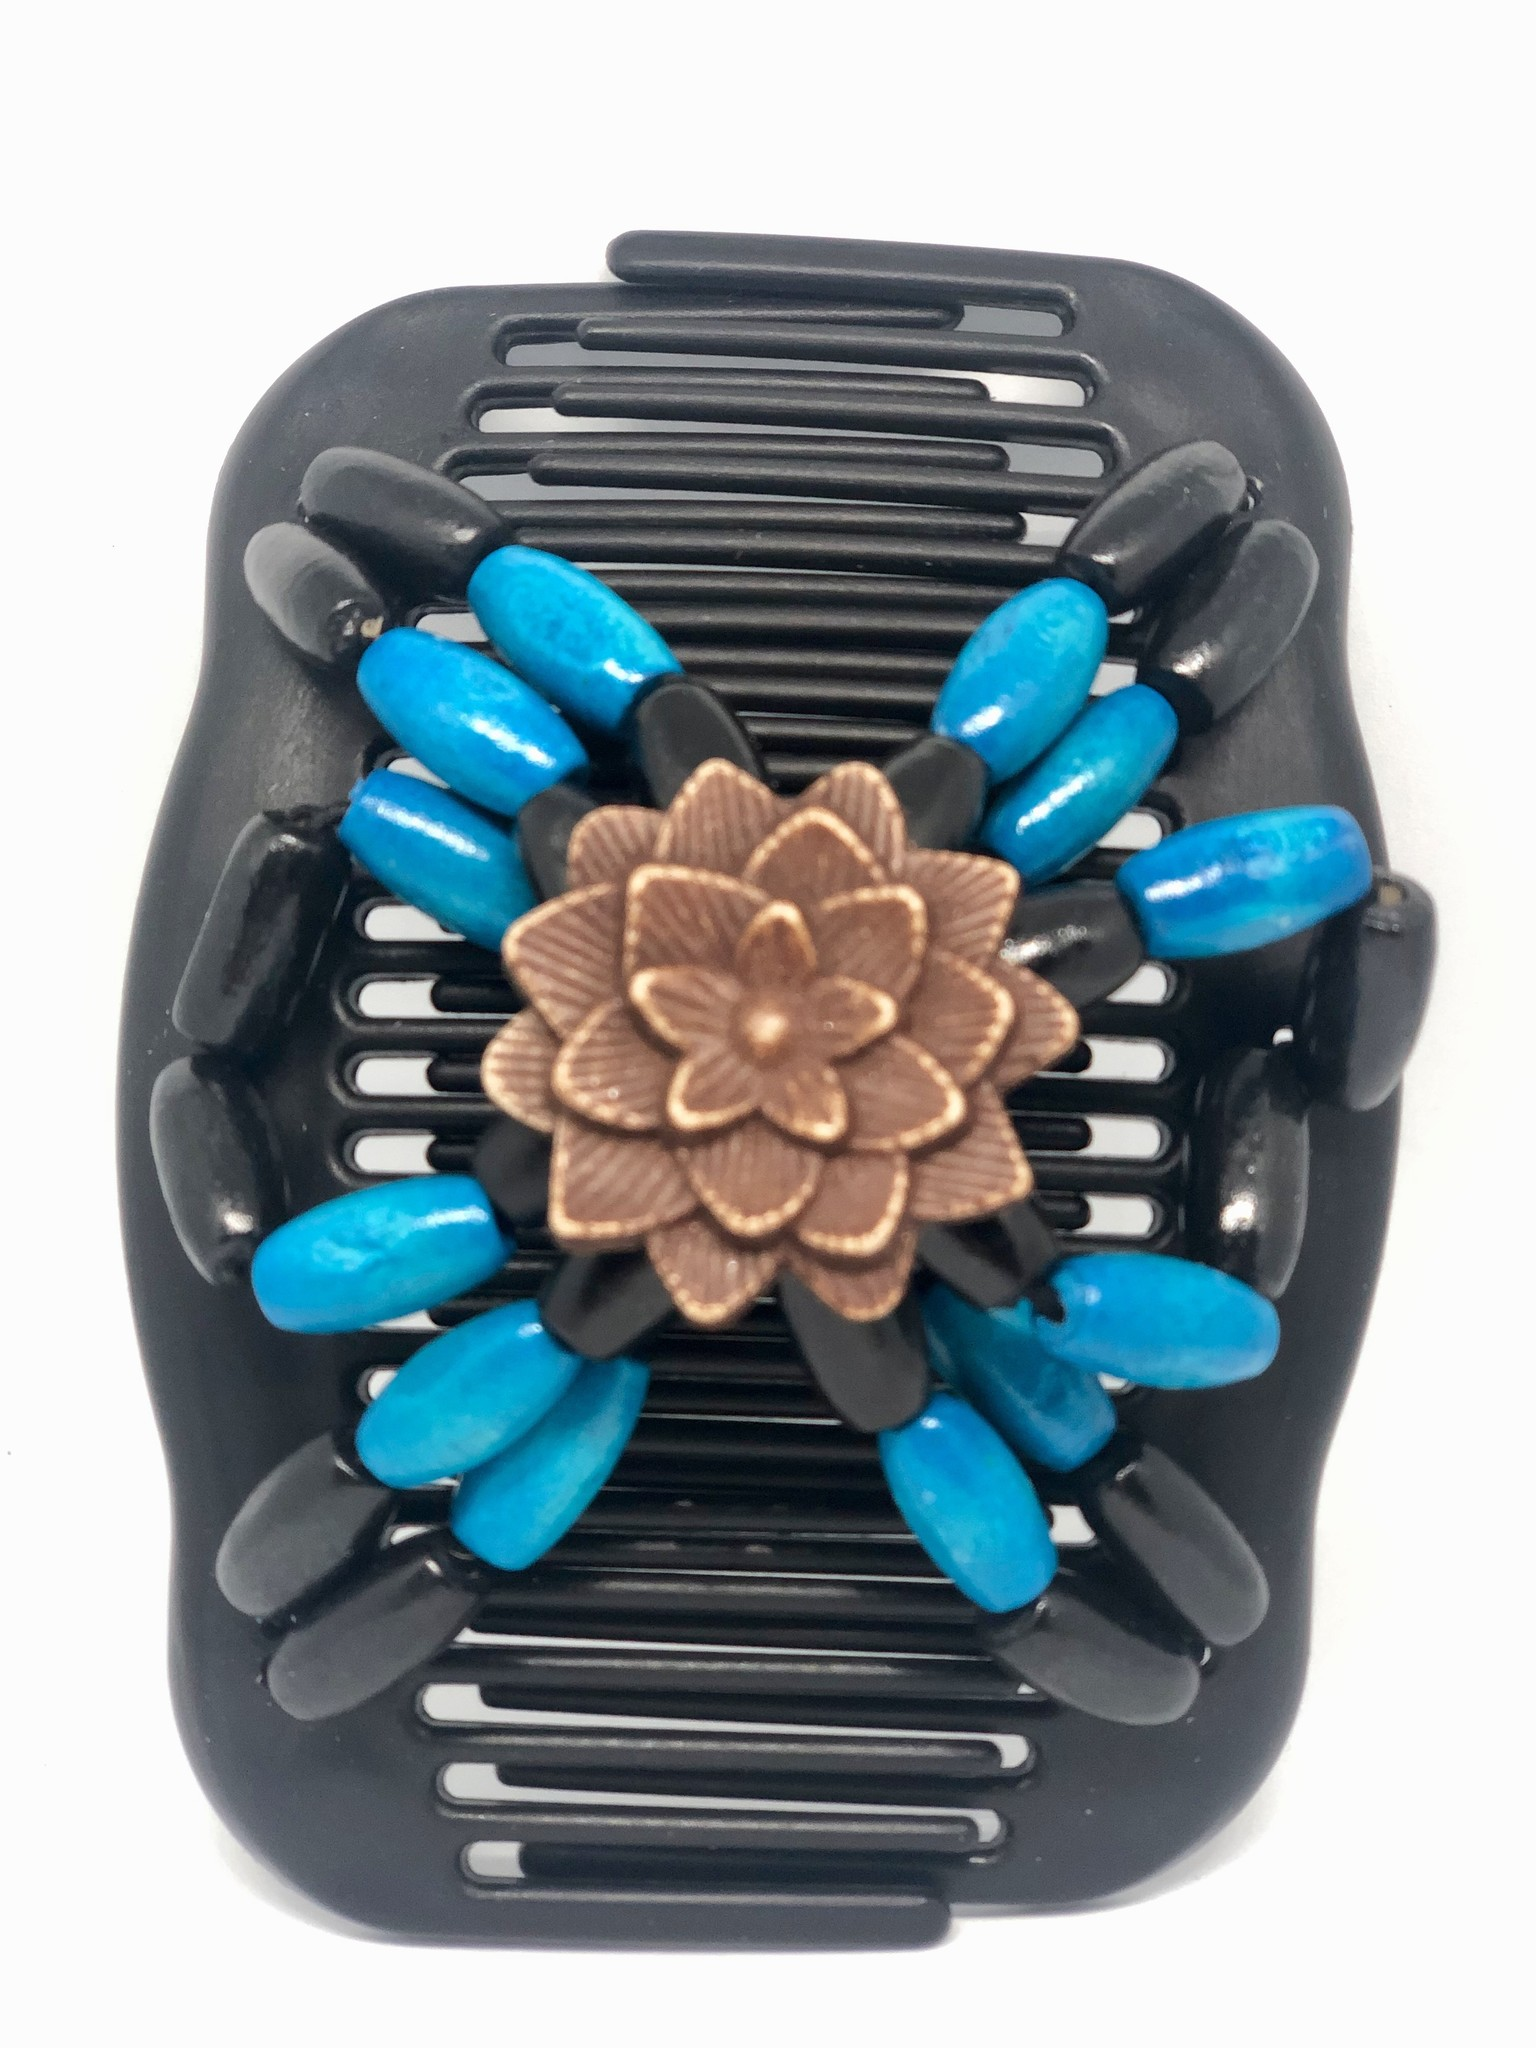 La Filetto Hairpin Magico Flower Power Spider-1